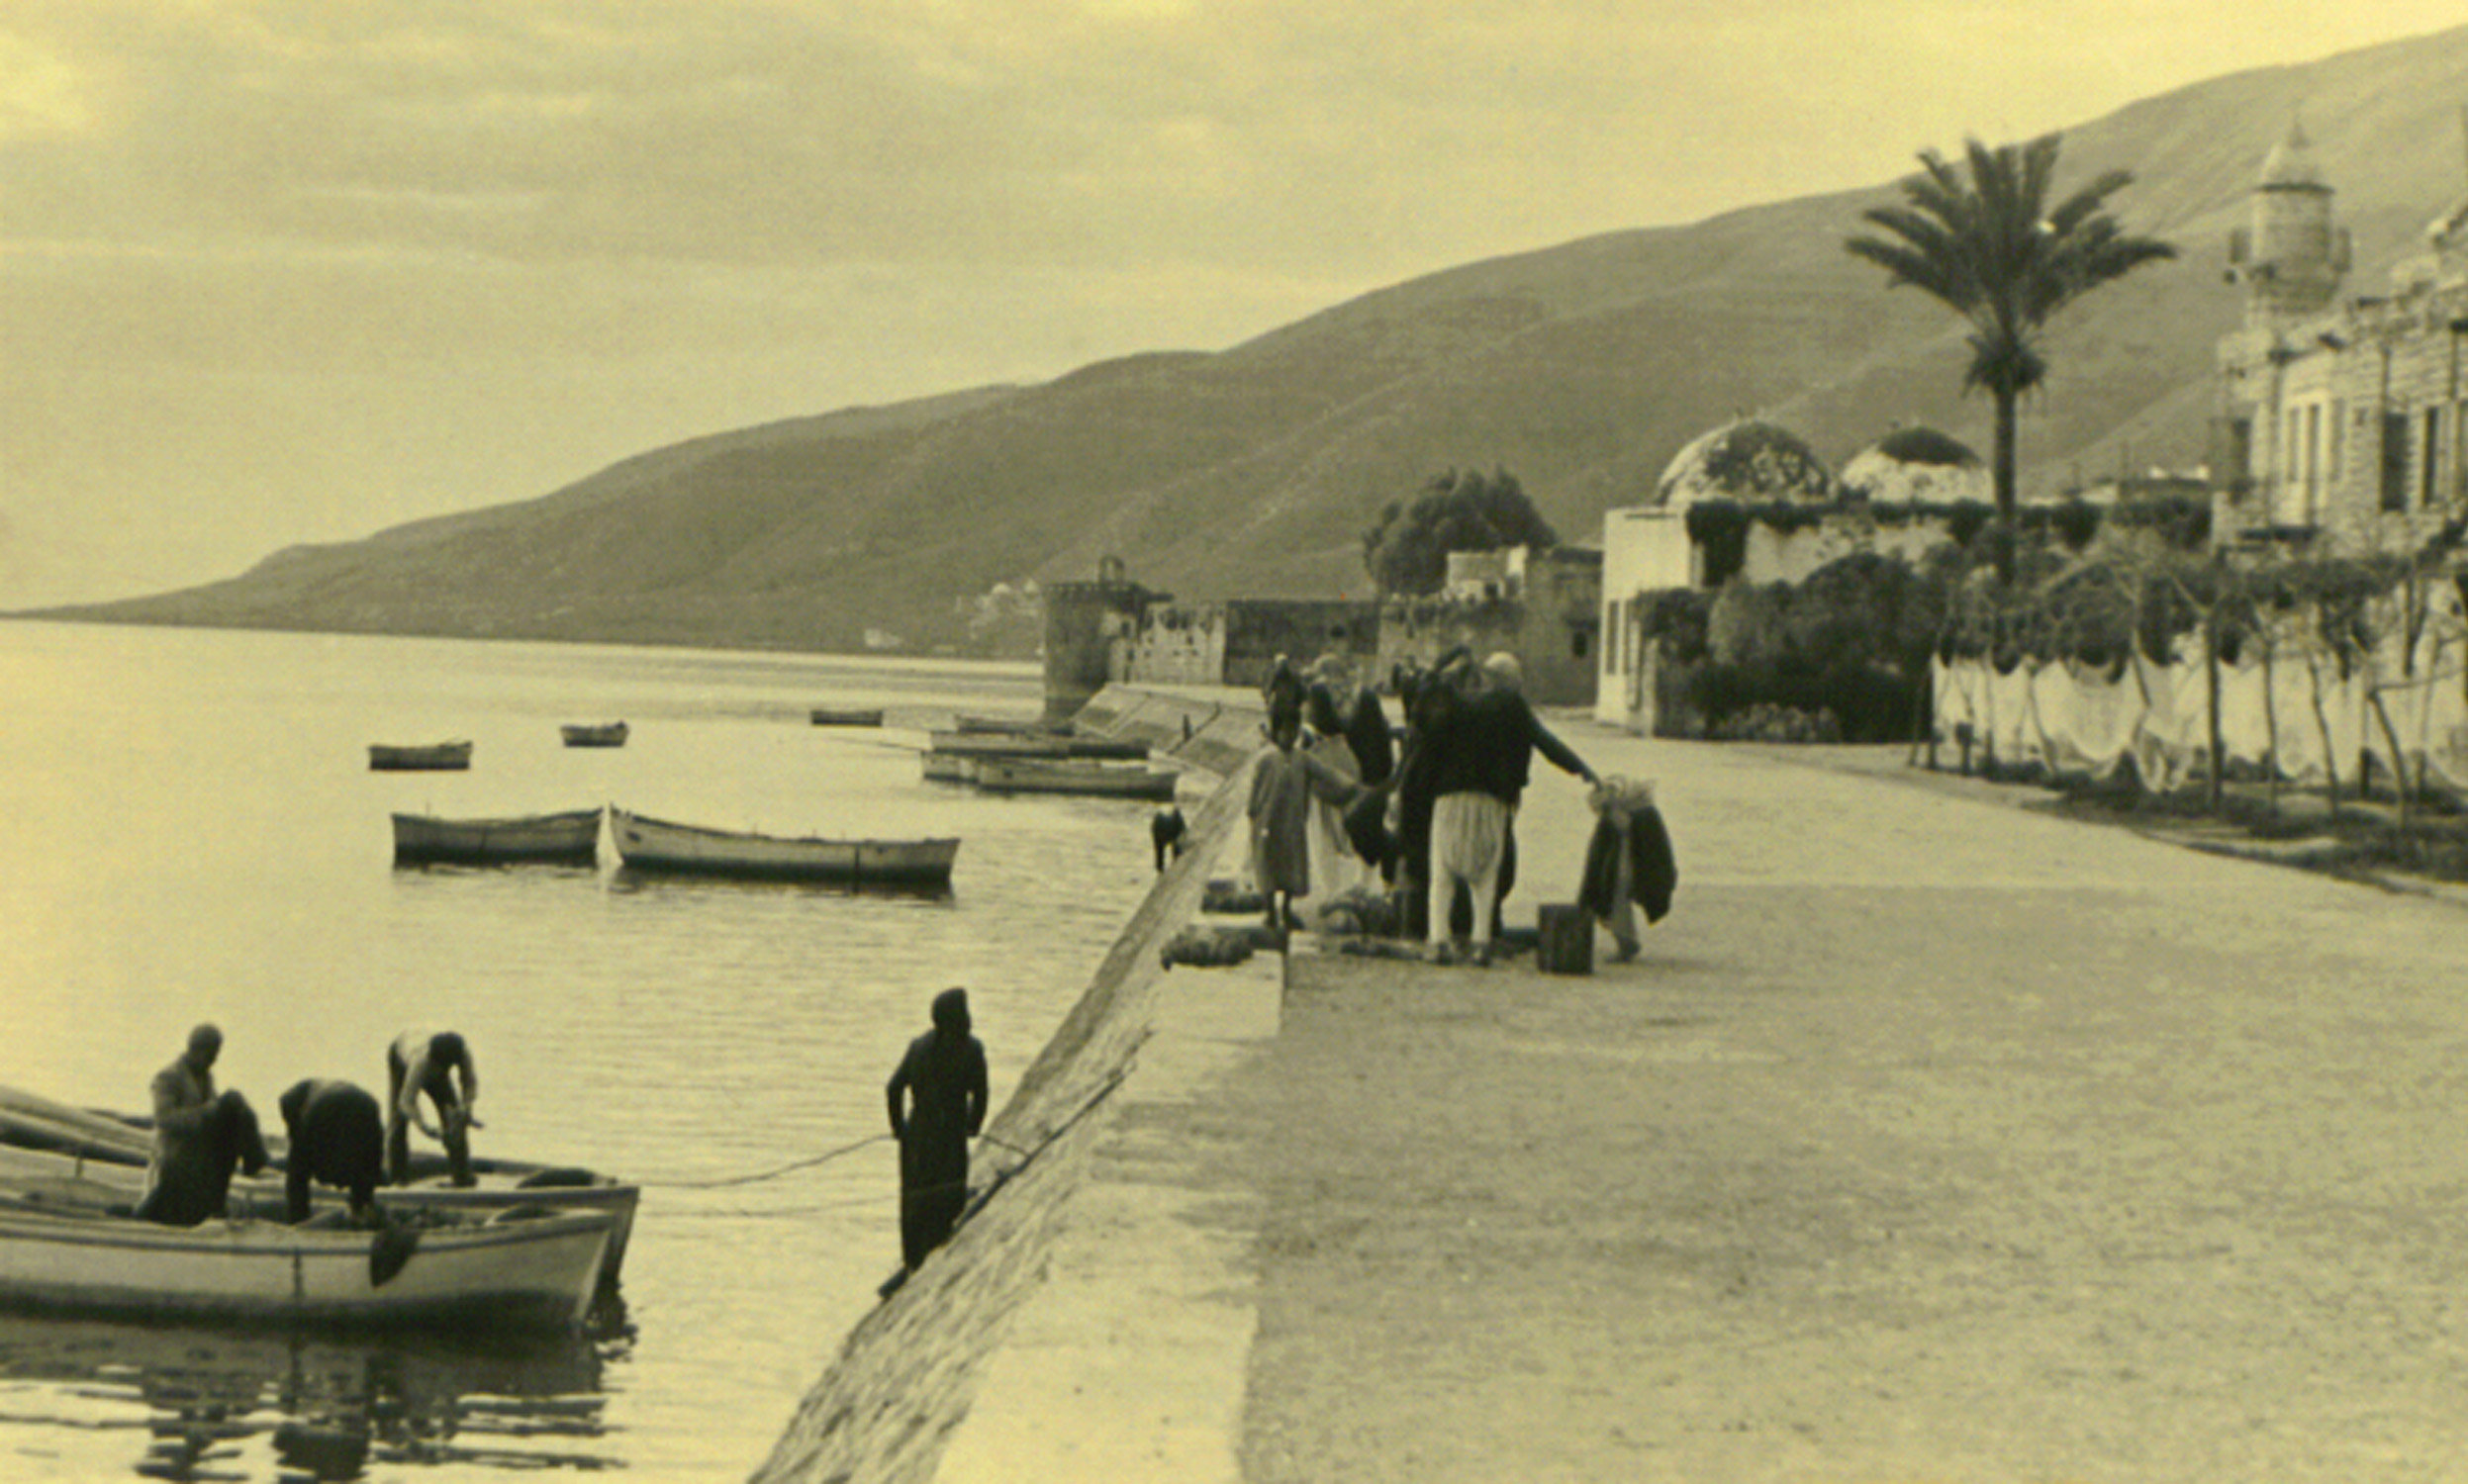 Tiberias - طبريه : Fishermen next to Al Bahr mosque, Tiberias, 1940